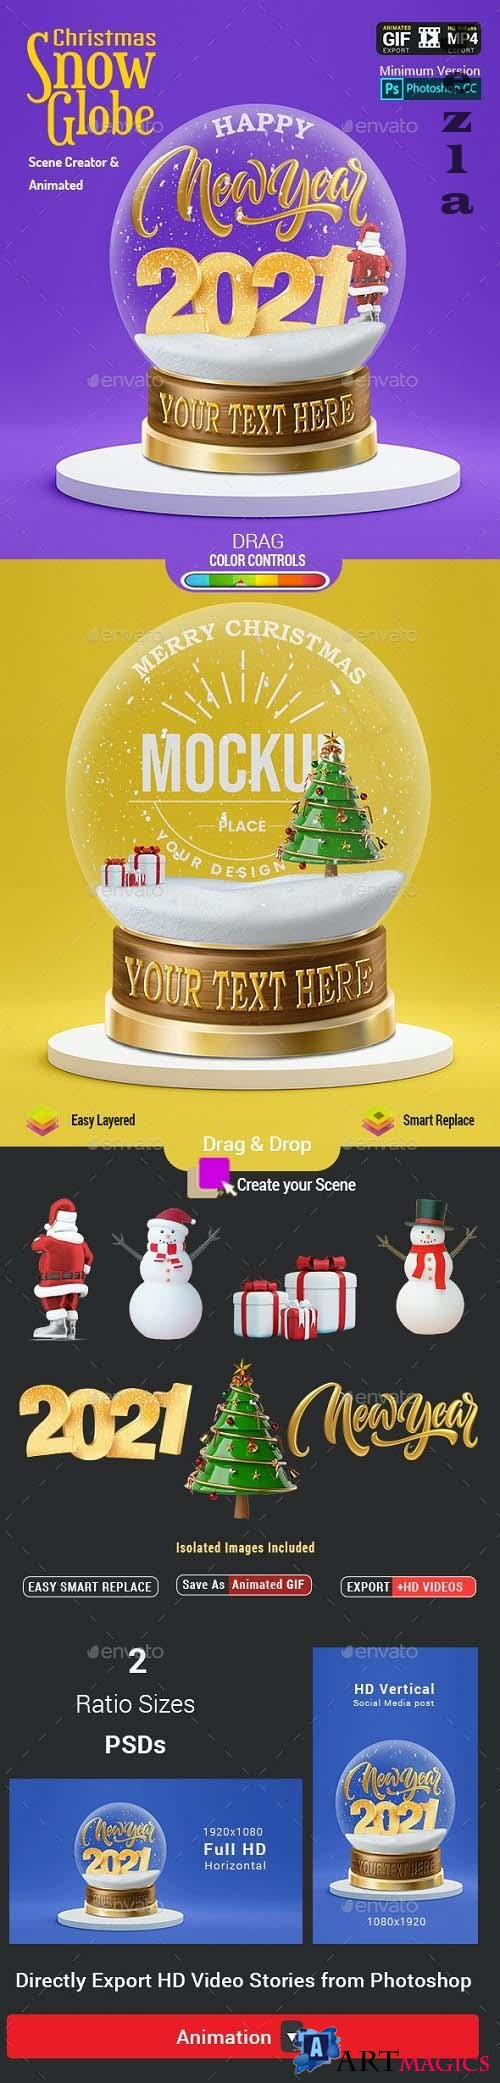 GraphicRiver - Christmas Snow Globe - Animated Scene Creator Mockup 29509413